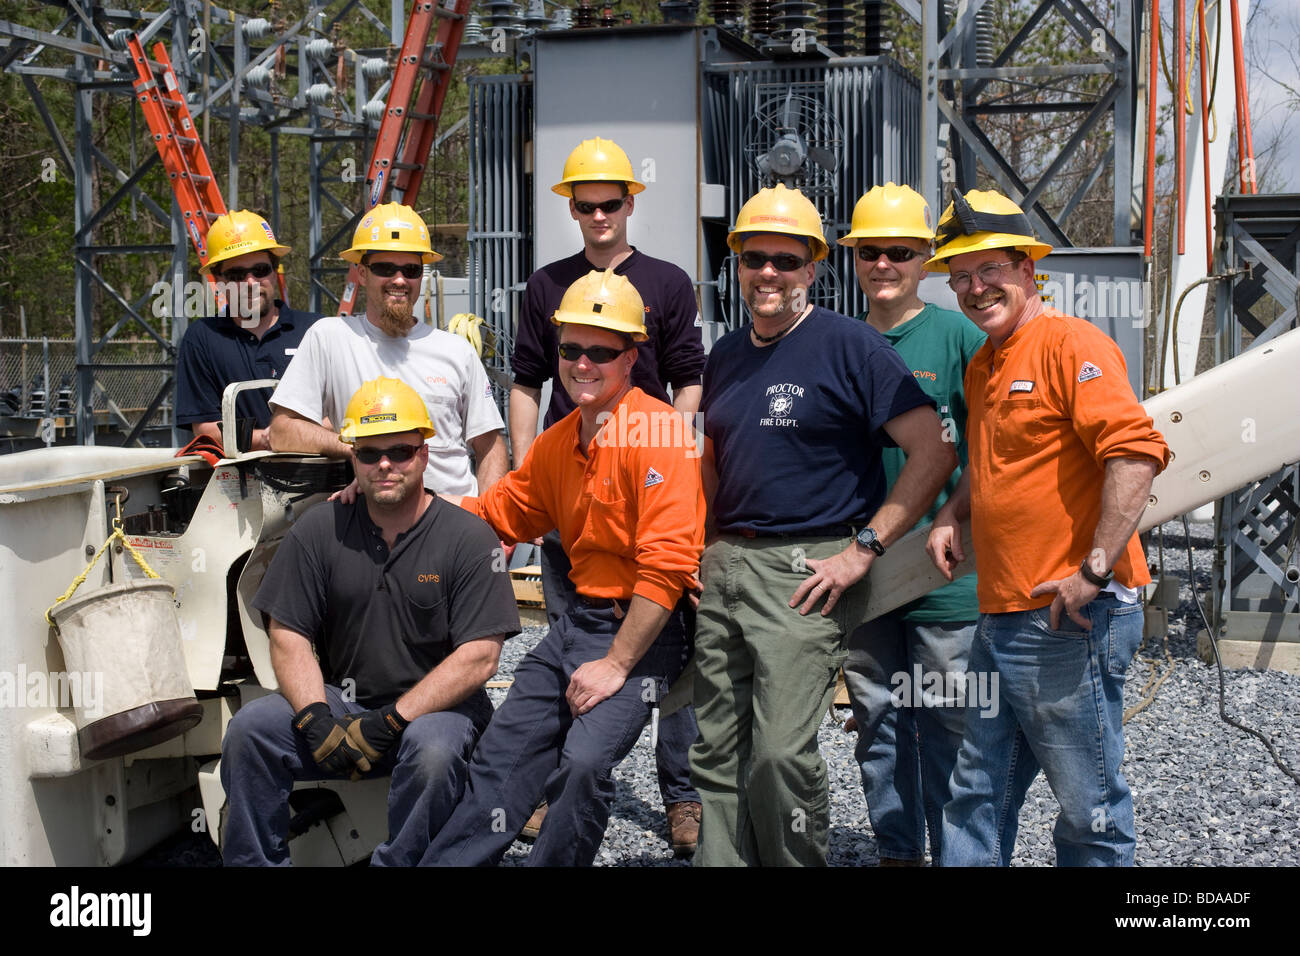 Electrical utility workmen posing for a group portrait - Stock Image